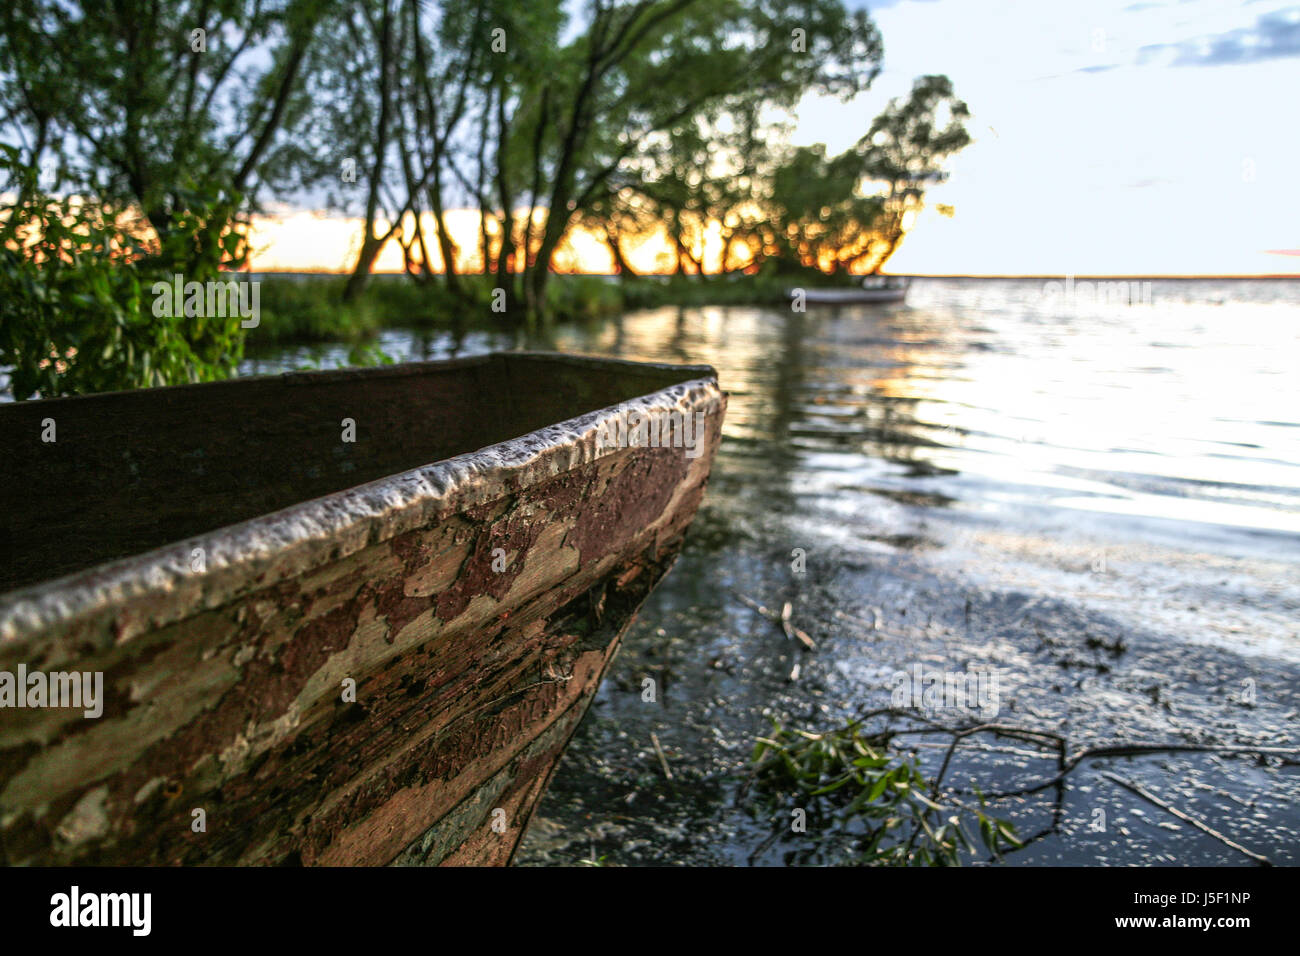 grief of the old boat - Stock Image